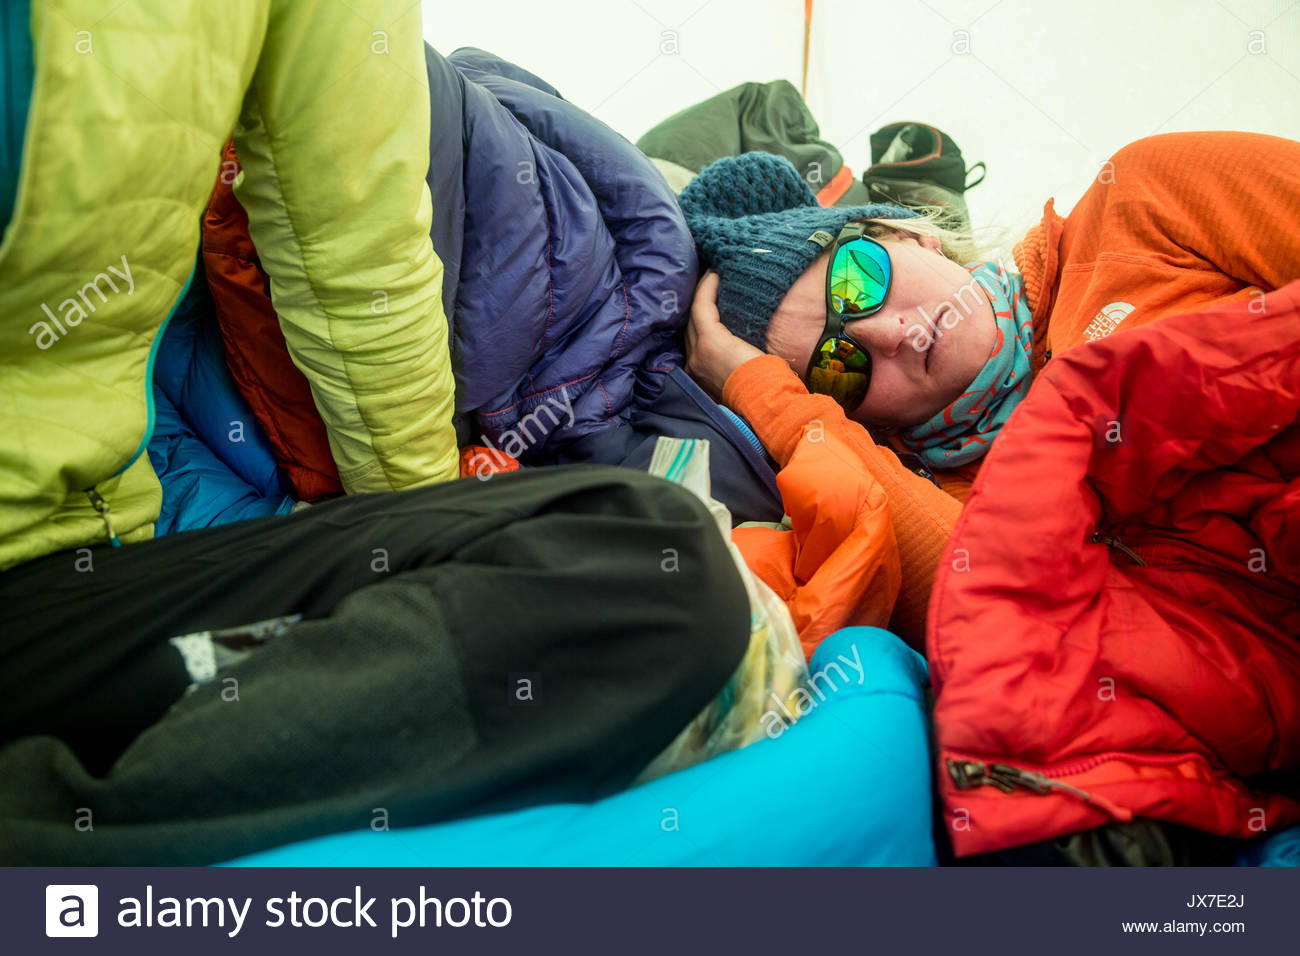 Expedition members rest and sleep inside of a tent as they attempt to summit Hkakabo Razi, said to be Southeast Asia's tallest mountain. - Stock Image